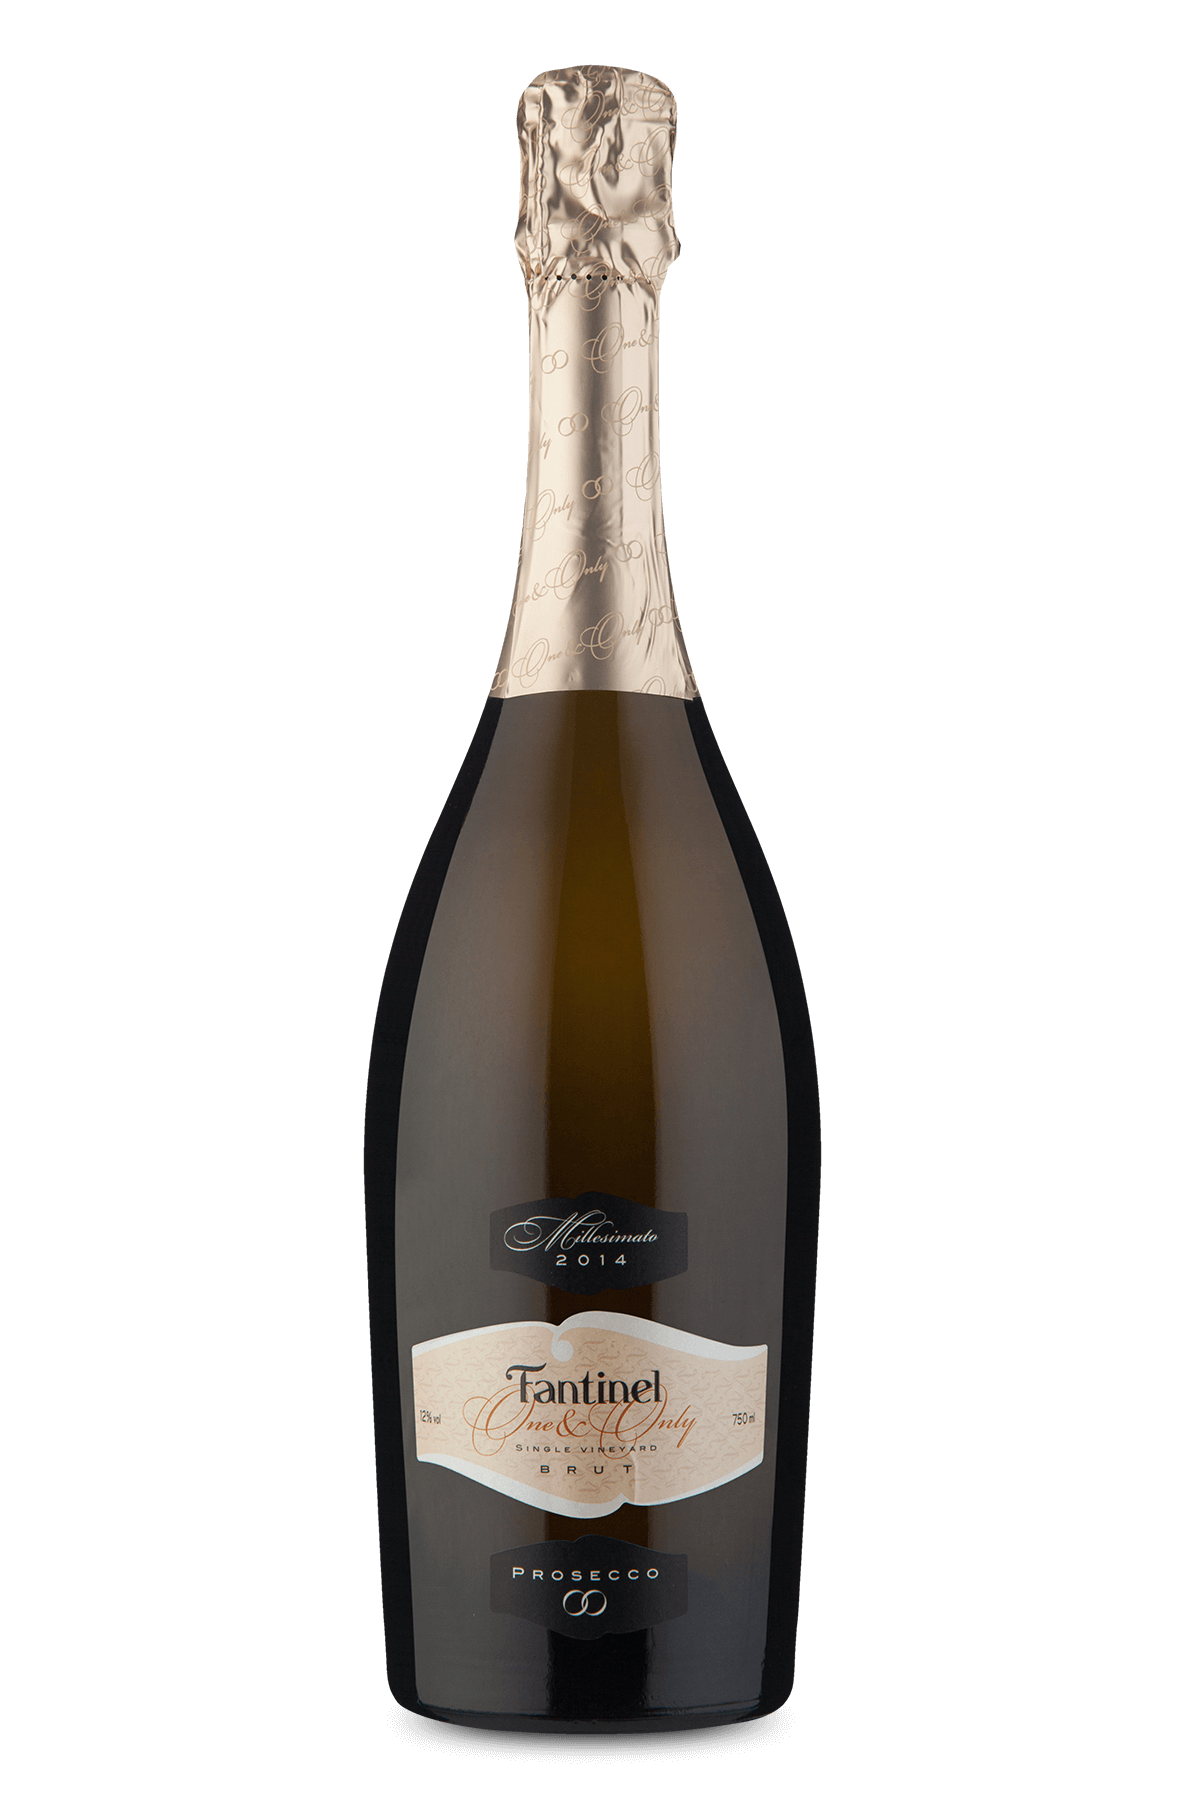 Espumante Fantinel One & Only D.O.C. Prosecco Brut 2014